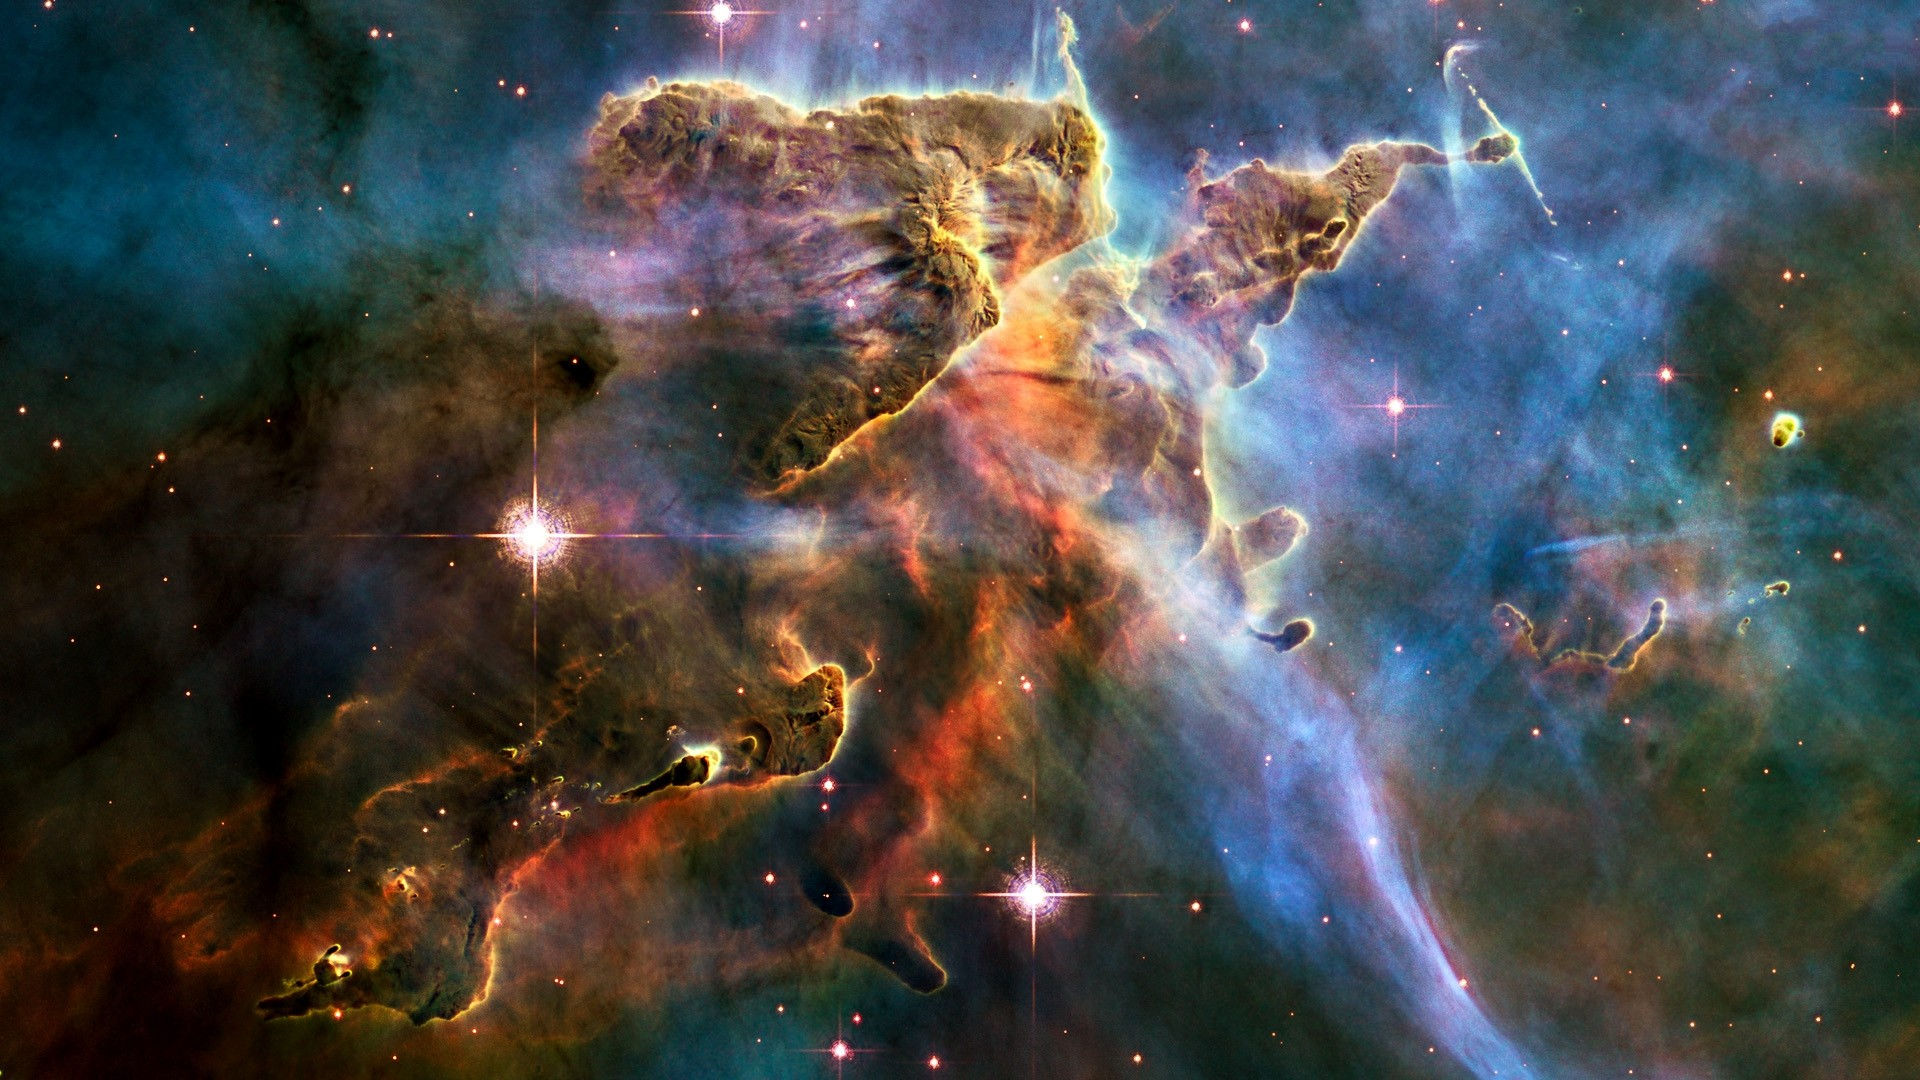 Hubble High Resolution Wallpaper (51+ images)